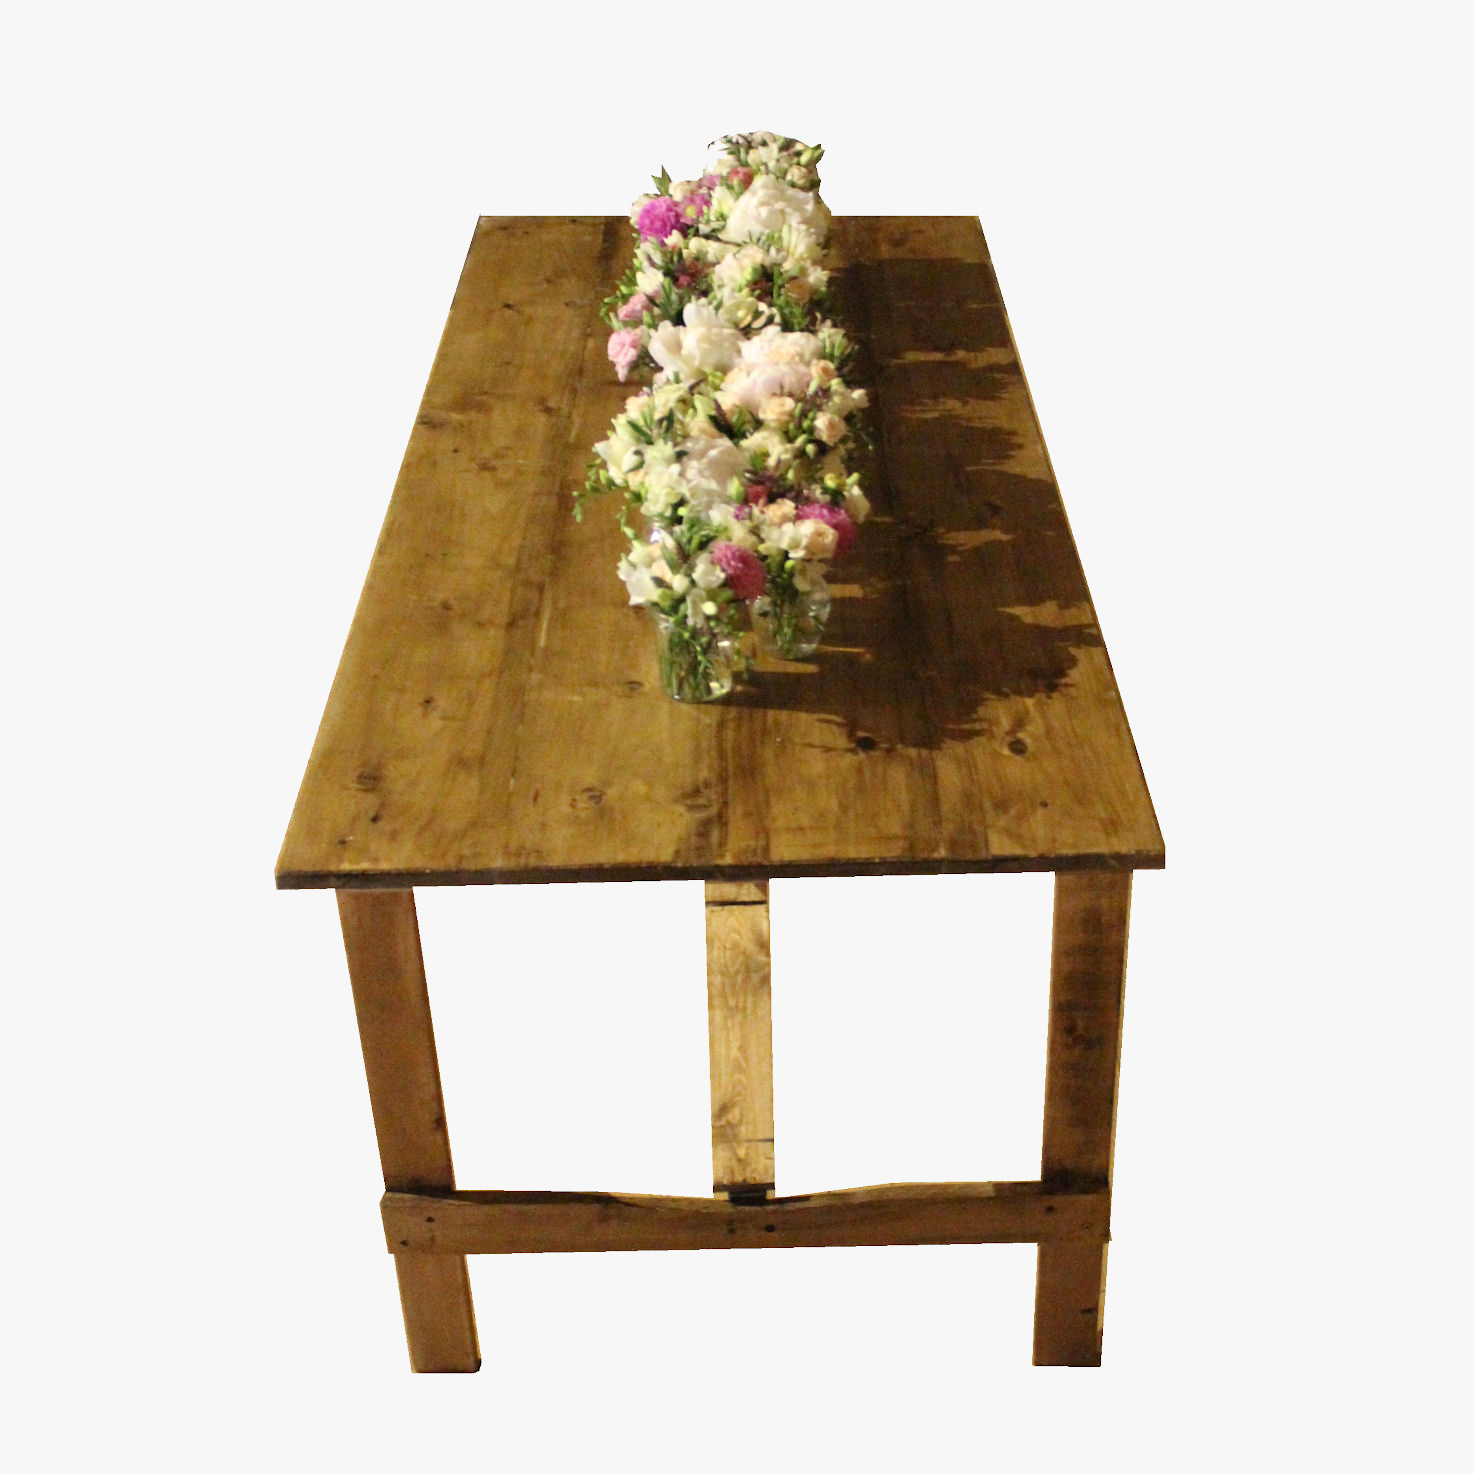 Rustic table with flowers for event hire